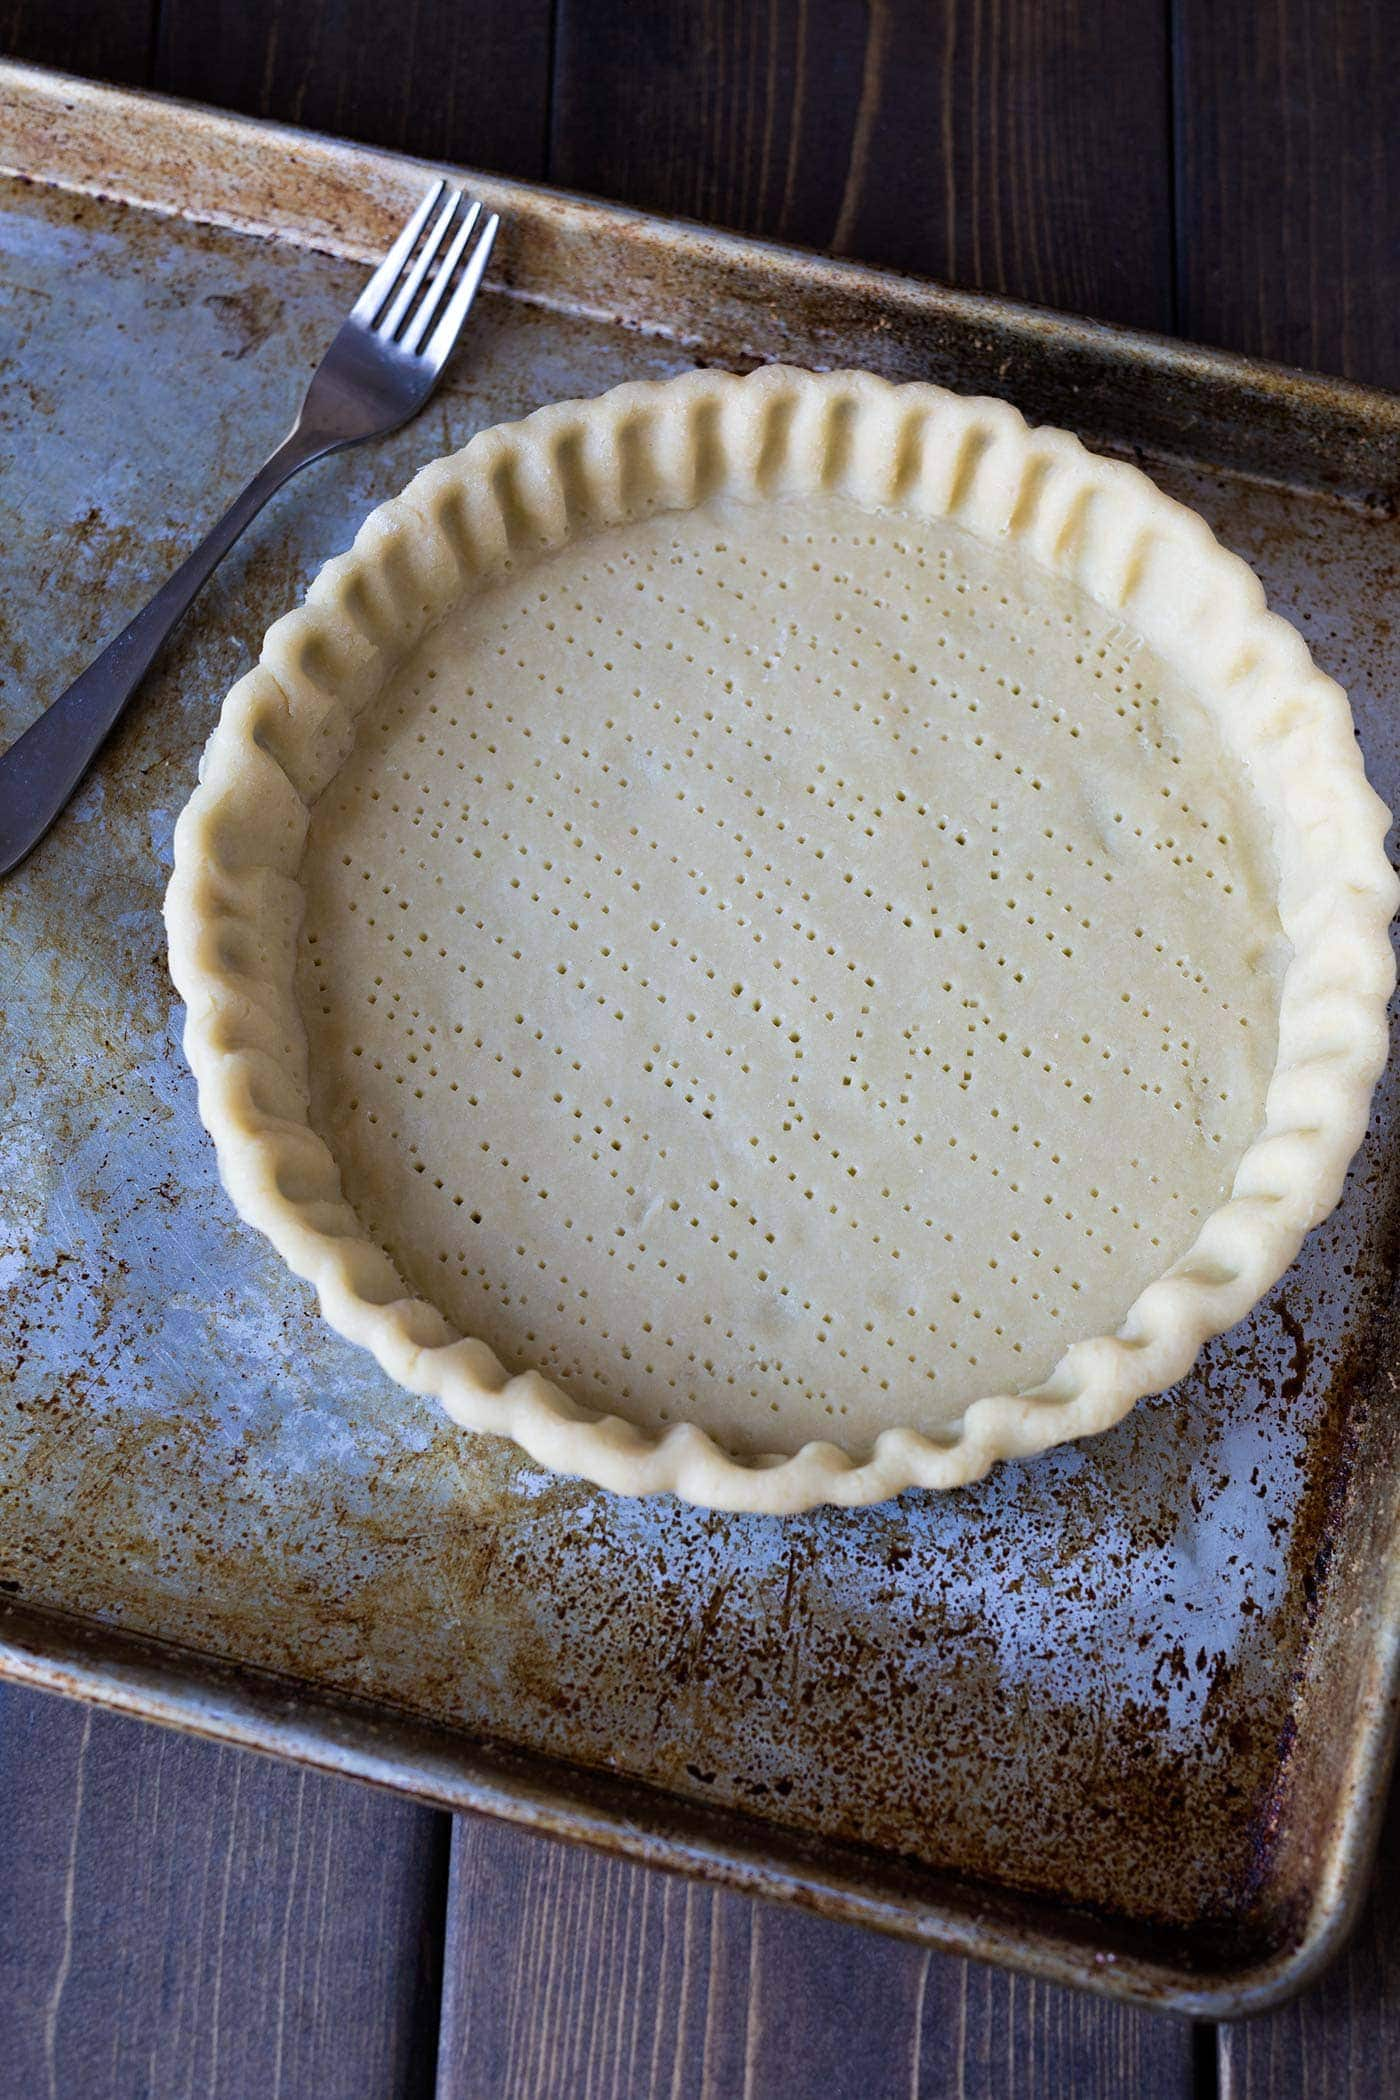 A photo of docked tart dough.